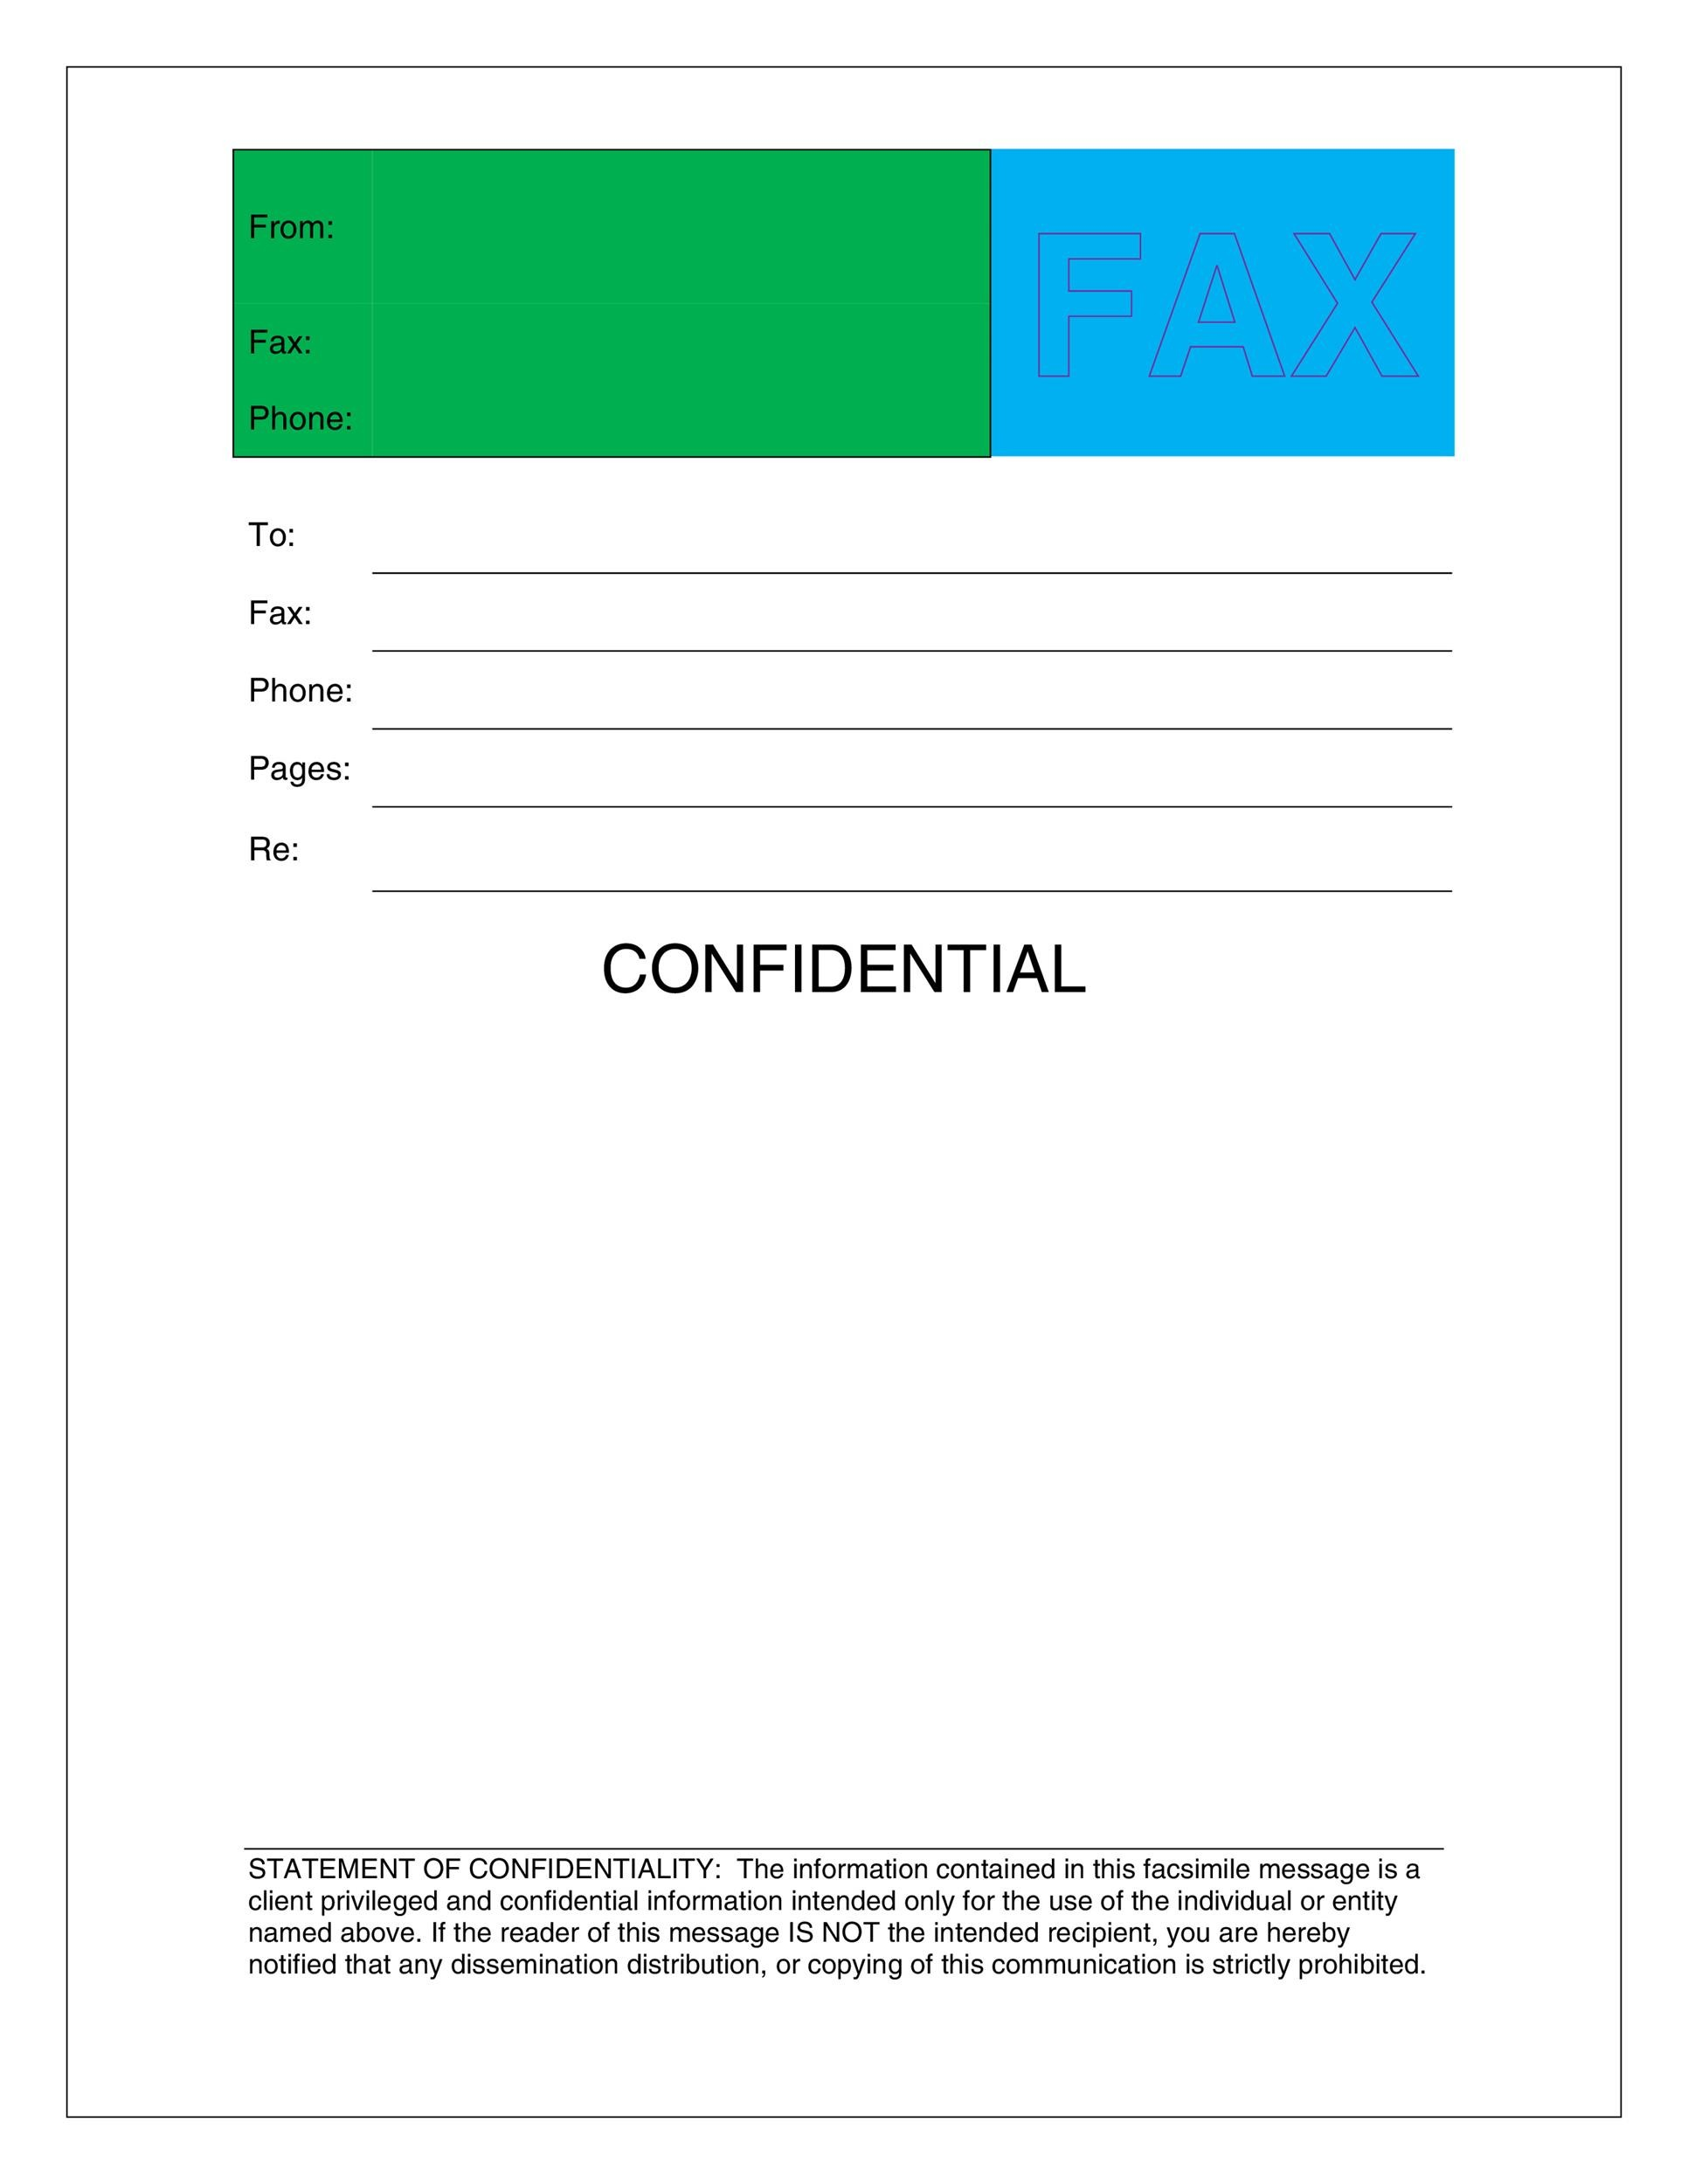 40 Printable Fax Cover Sheet Templates - Template Lab - sample professional fax cover sheet template